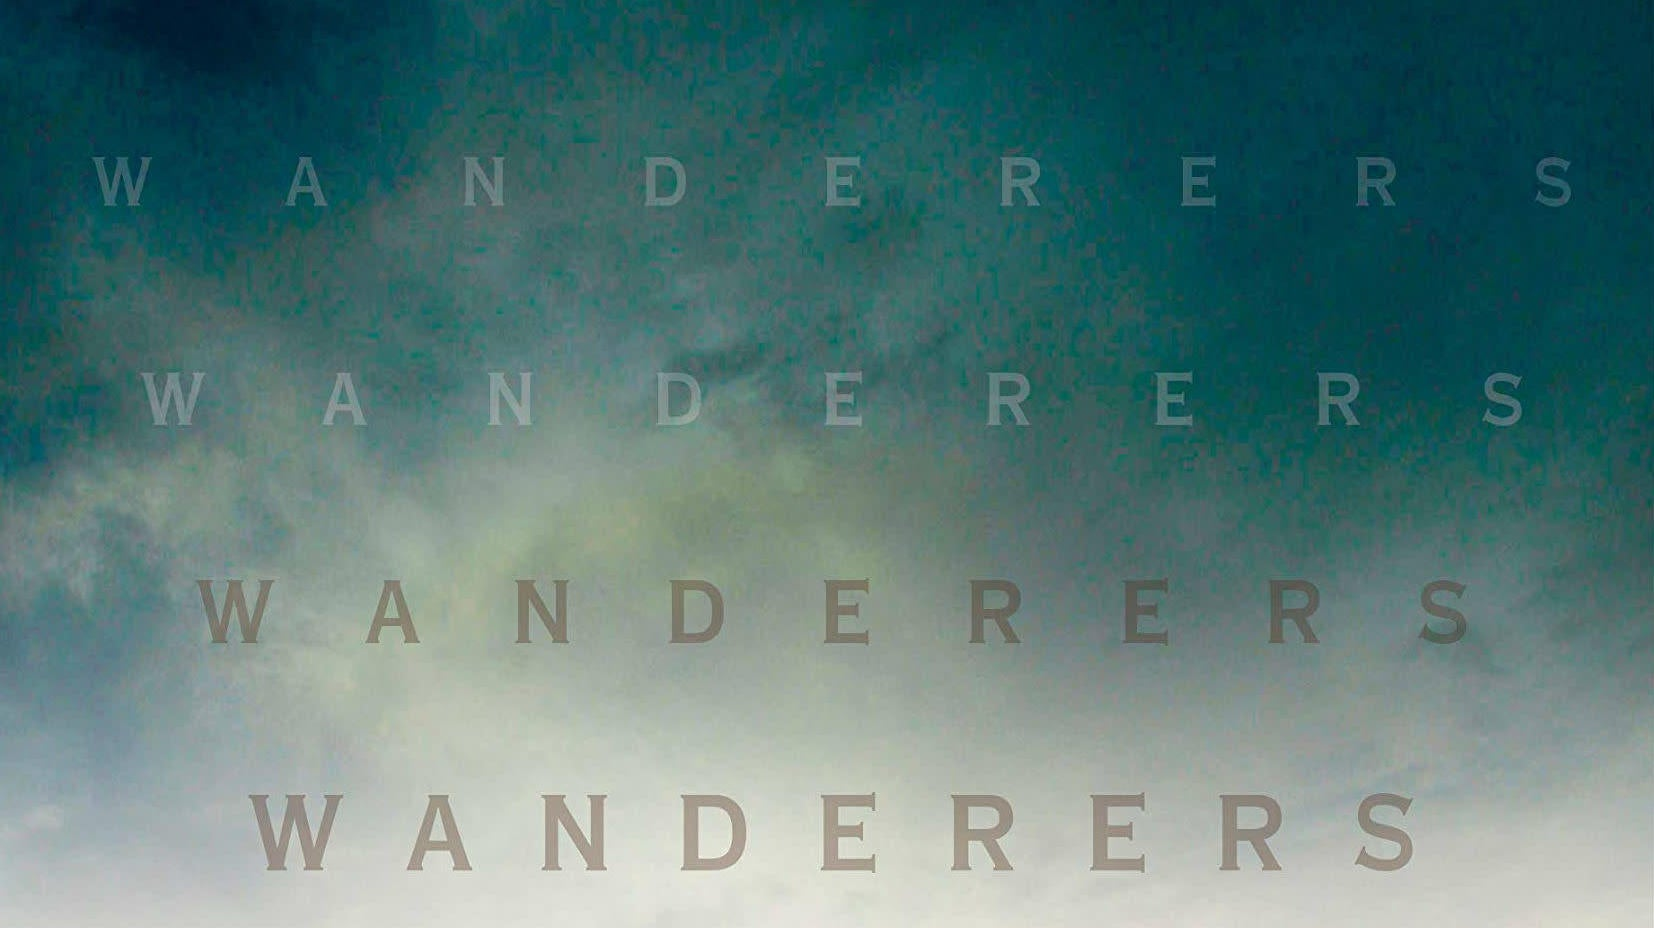 In This Excerpt From Chuck Wendig's New Sci-Fi Thriller, Wanderers, A Scientist Begins To Realise The World's In Deep Trouble